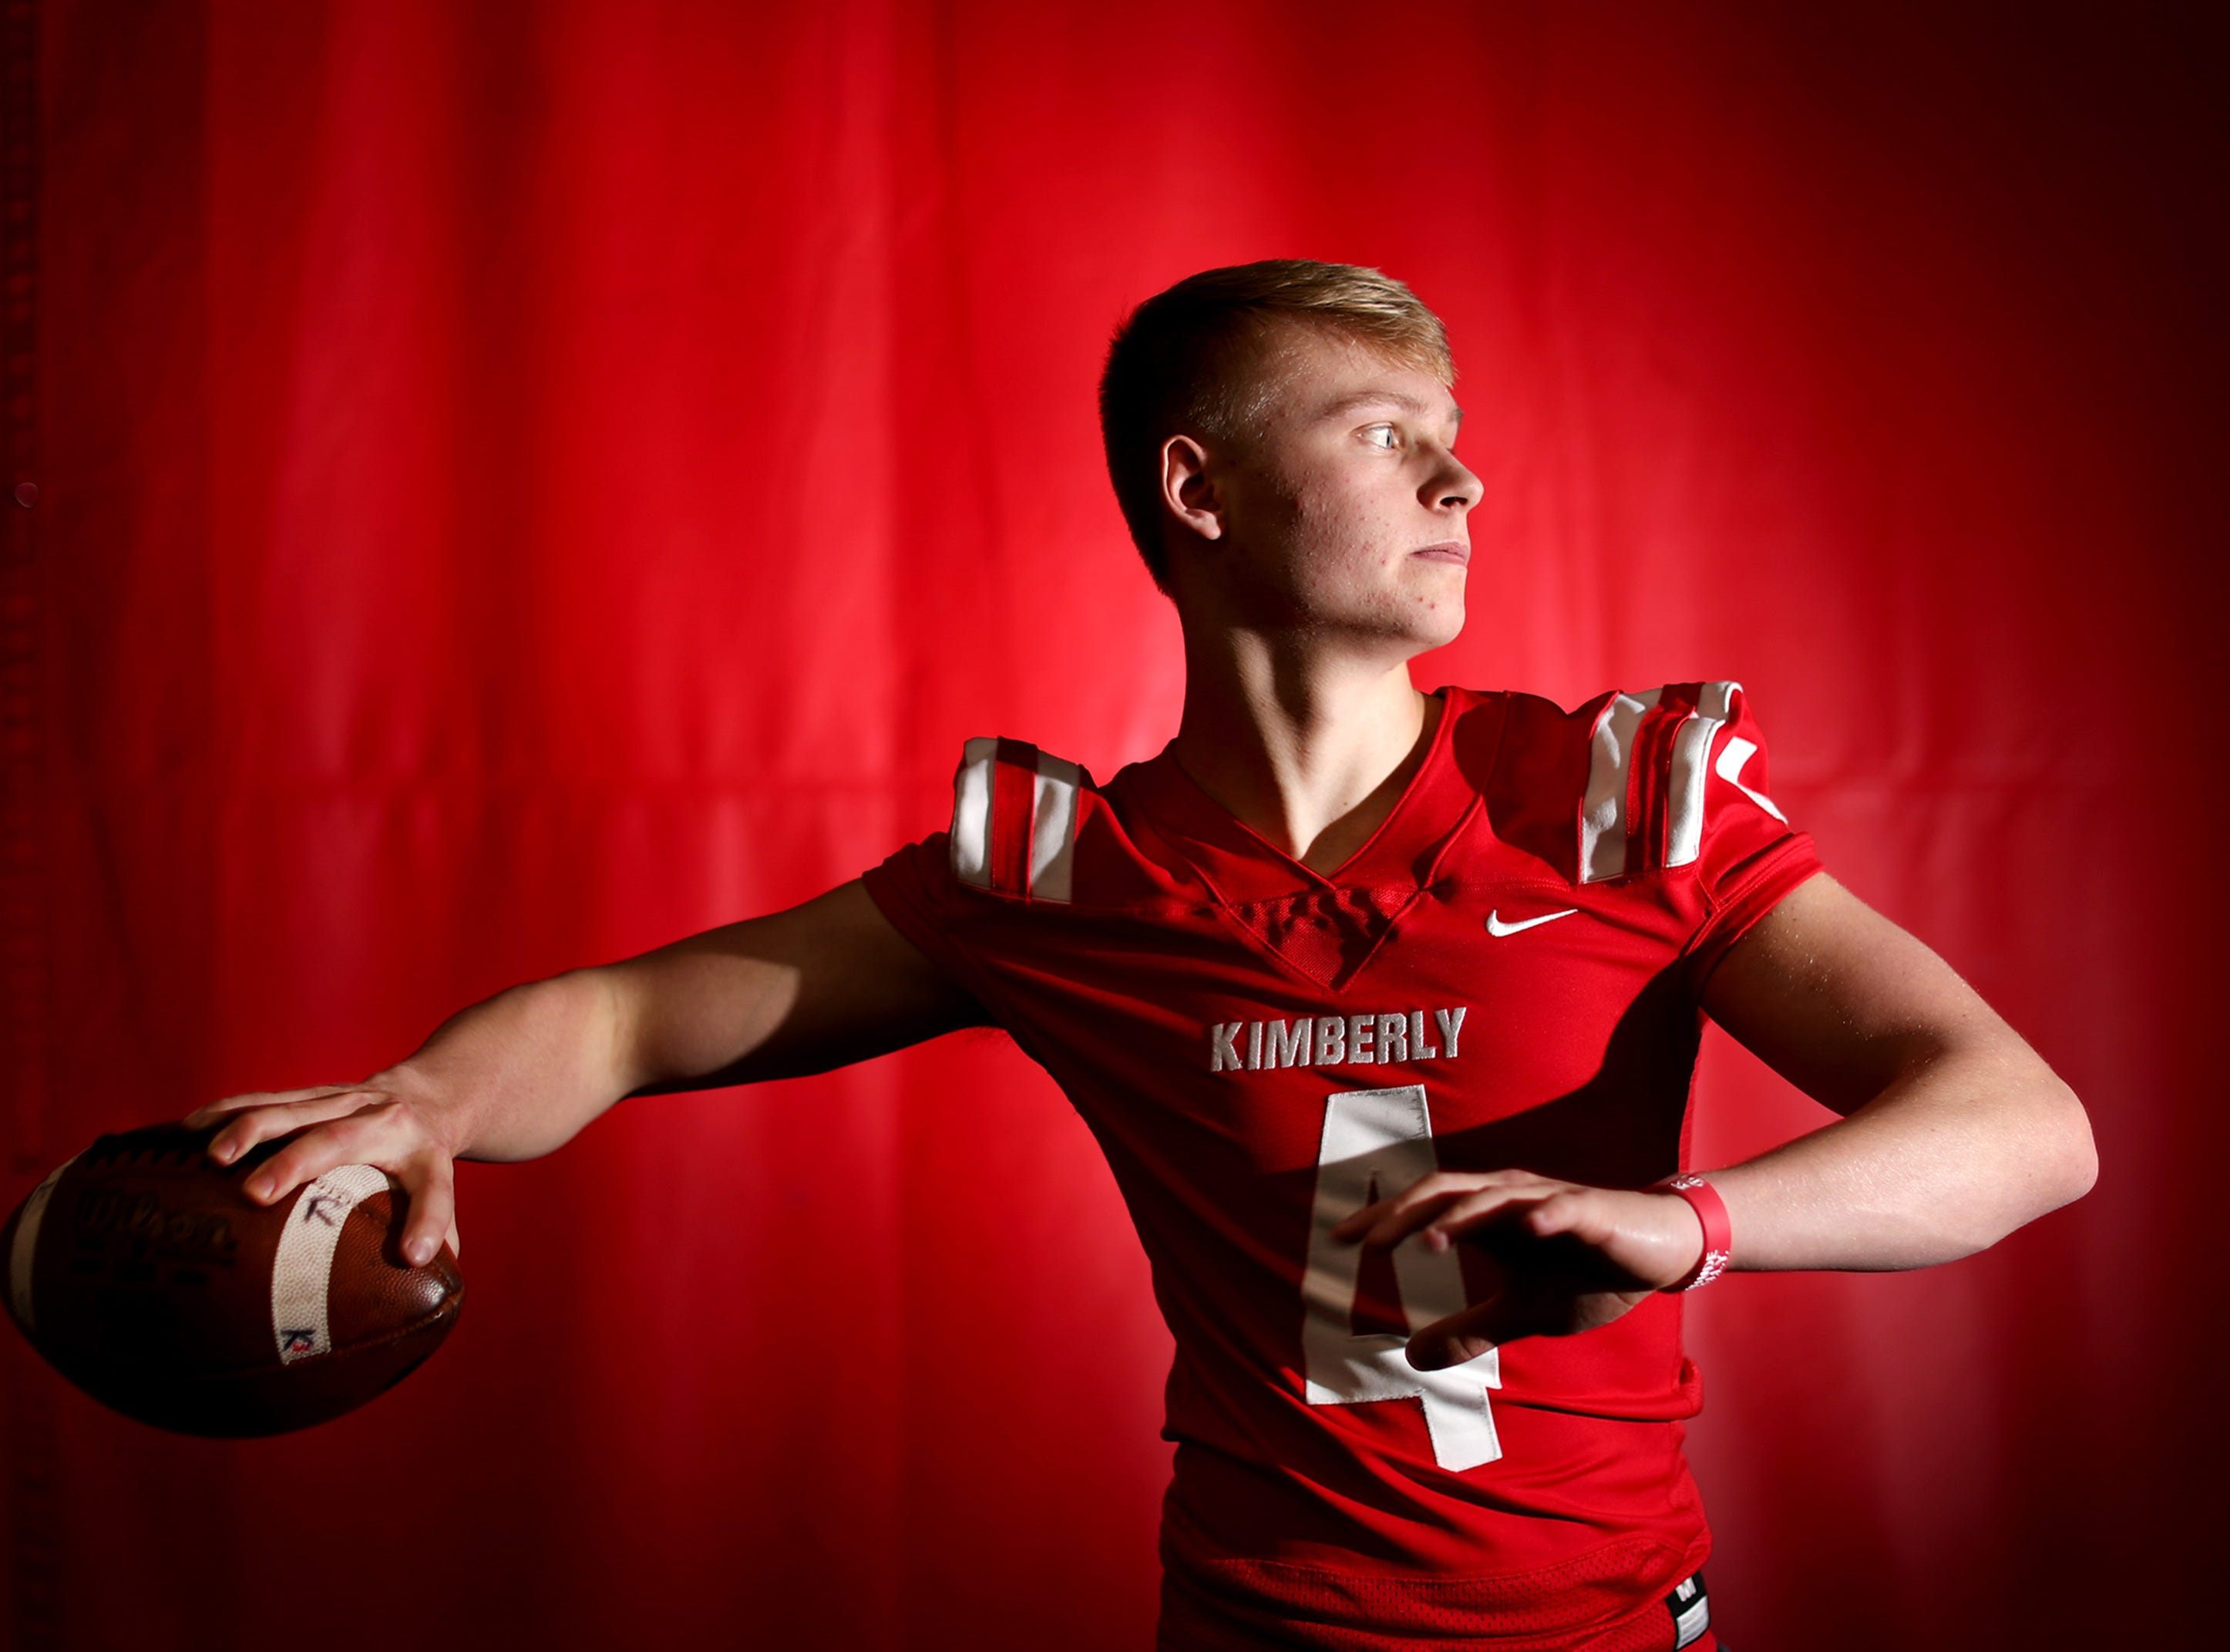 Cody Staerkel, of Kimberly, is the Post-Crescent's football player of the year Tuesday, Dec. 11, 2018, in Kimberly, Wis.Danny Damiani/USA TODAY NETWORK-Wisconsin